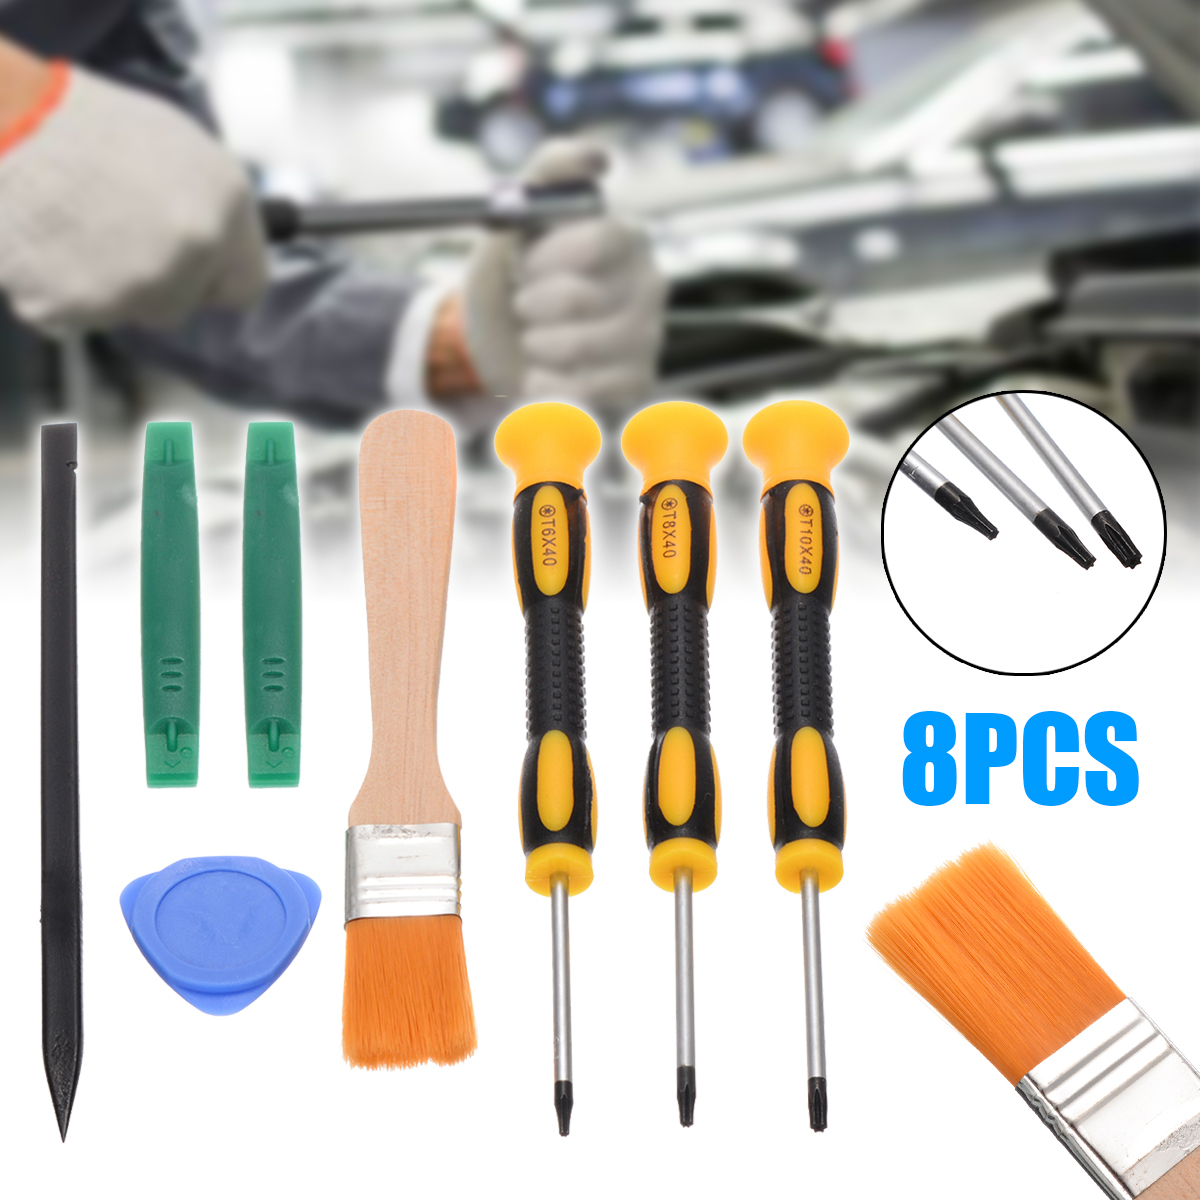 8pcs 3 Types Prying Tool Kit With T8 T6 T10 Screwdriver And Cleaning Brush Set For Xbox One 360 PS3 PS4